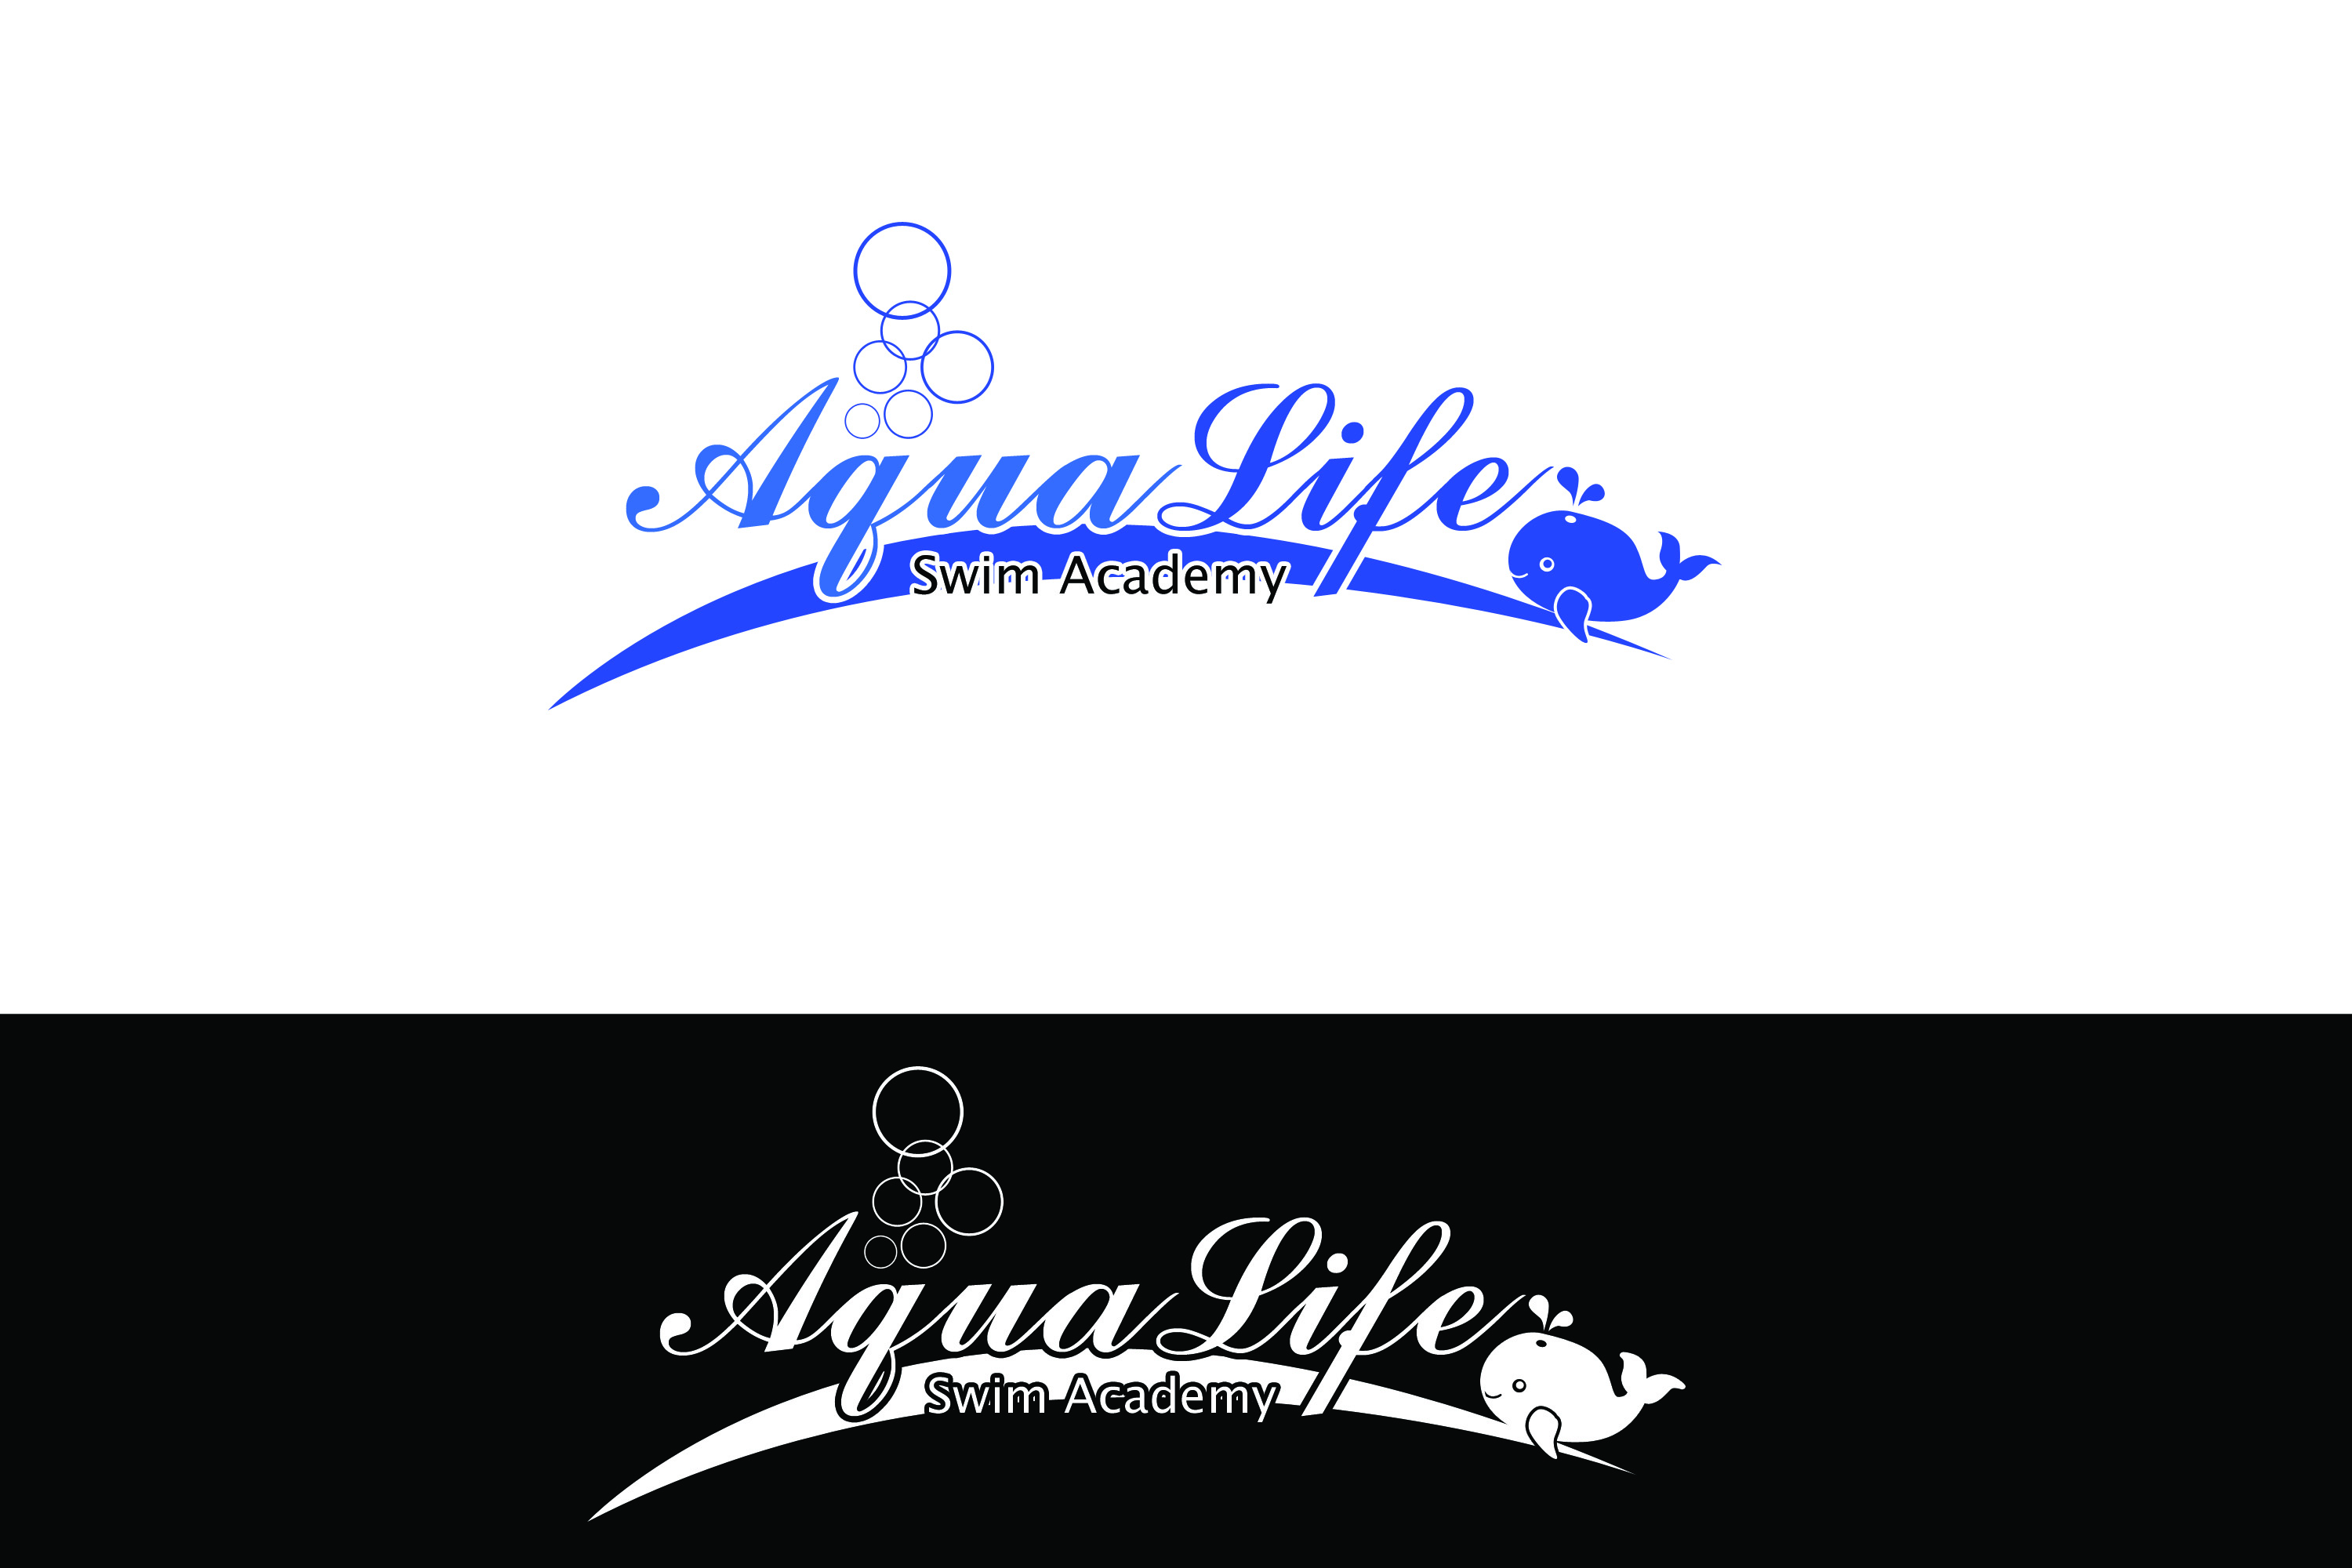 Logo Design by Private User - Entry No. 40 in the Logo Design Contest Artistic Logo Design Wanted for The Aqua Life Swim Academy.